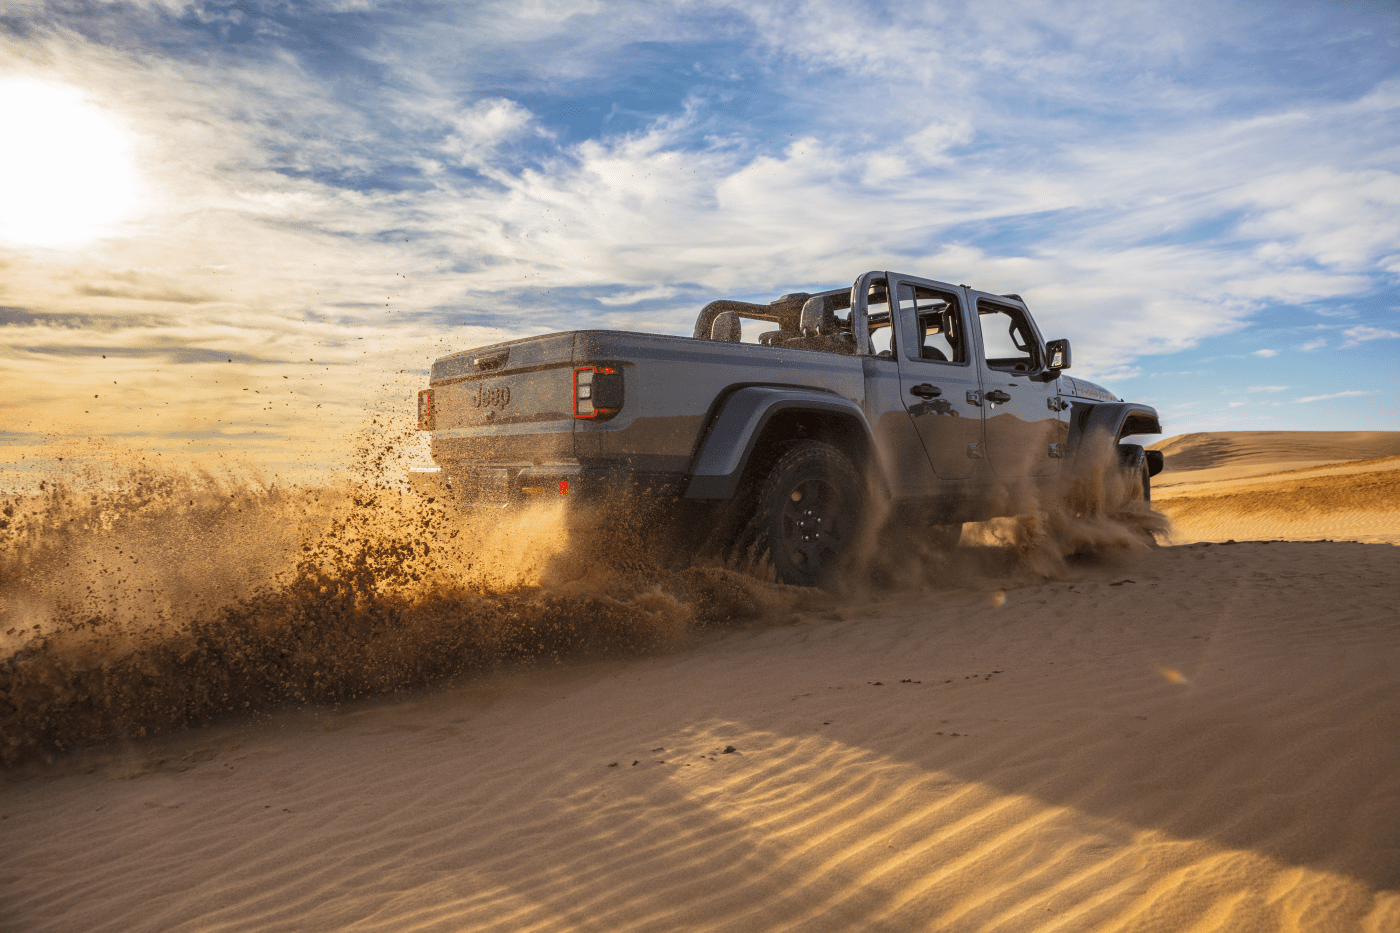 Test Drive The 2021 Jeep Gladiator Today!